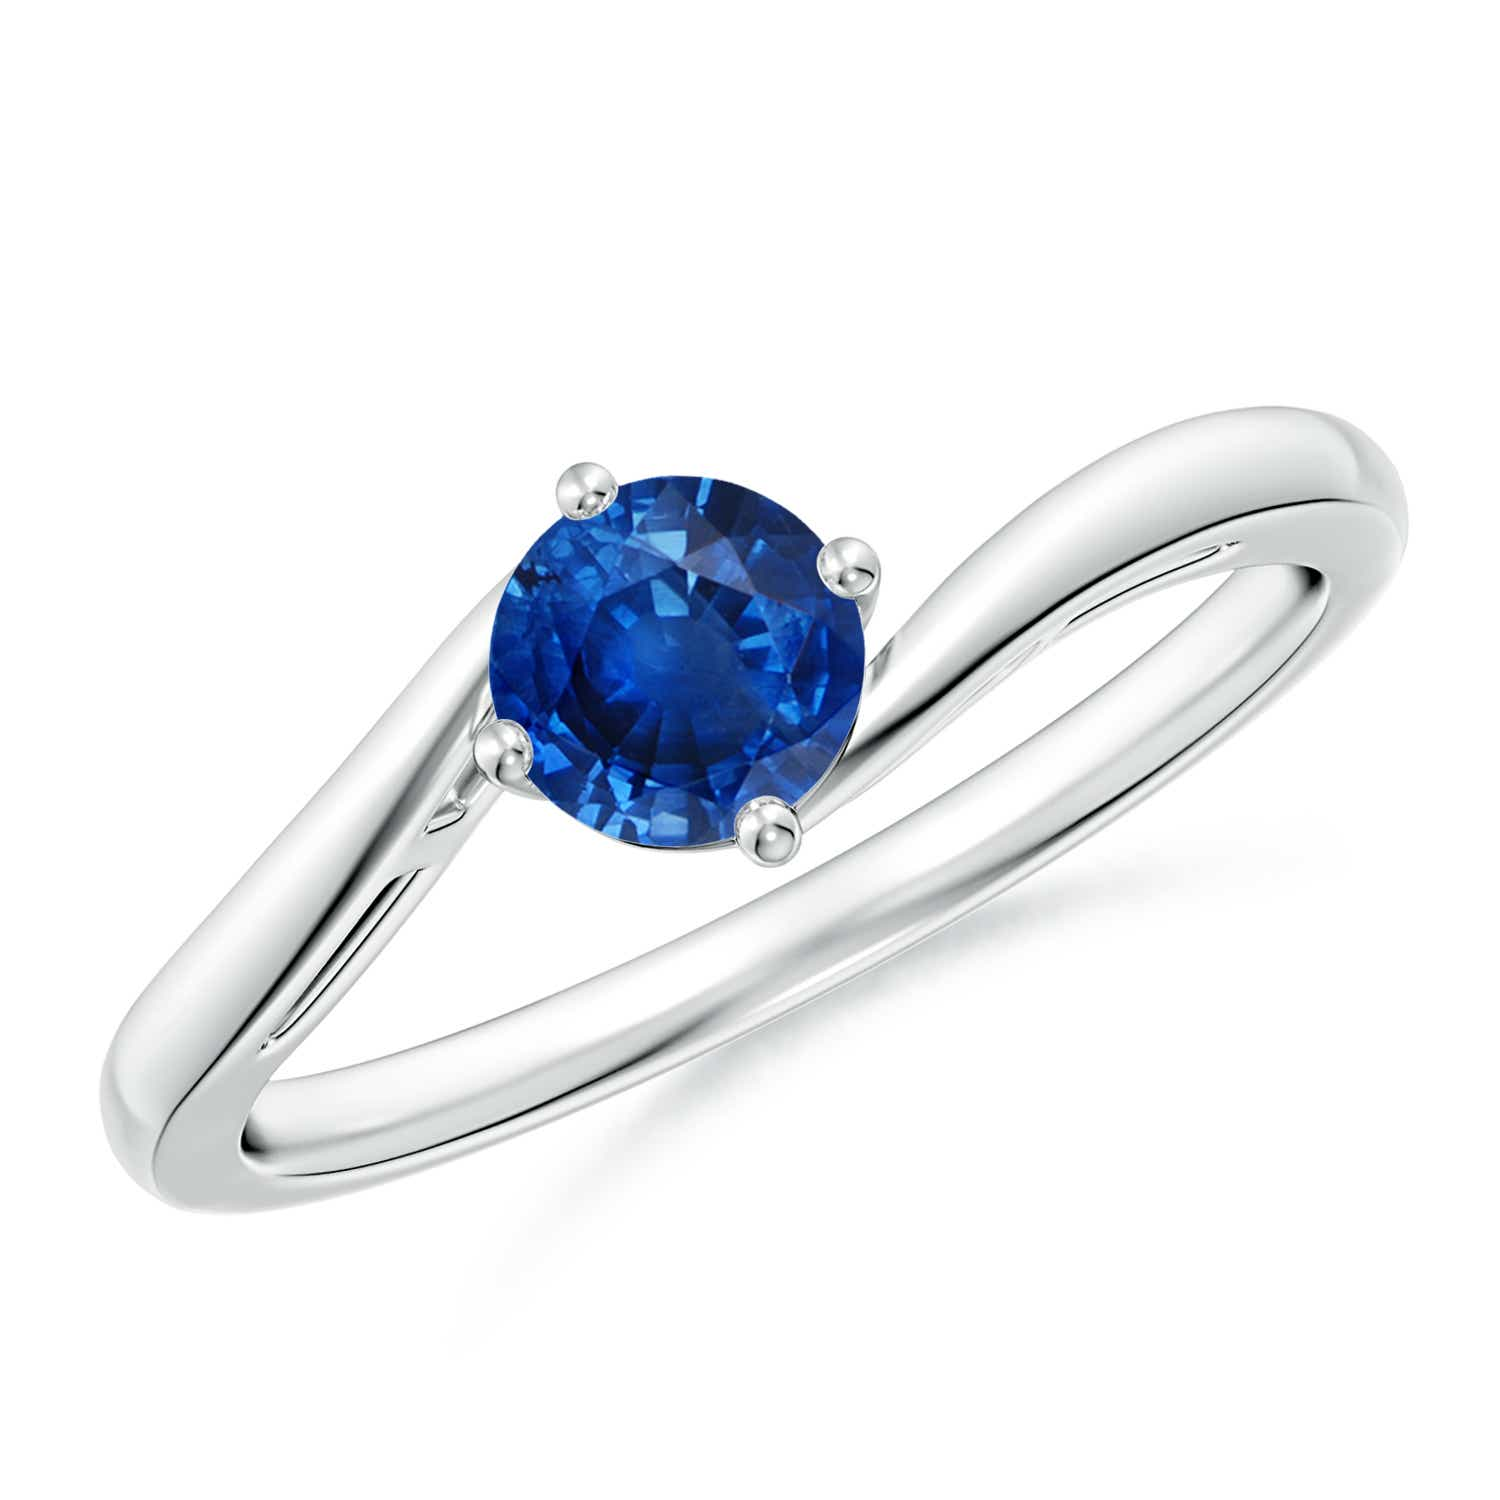 Angara Classic Solitaire Sapphire Diamond Curved Shank Ring in Platinum uNkwV